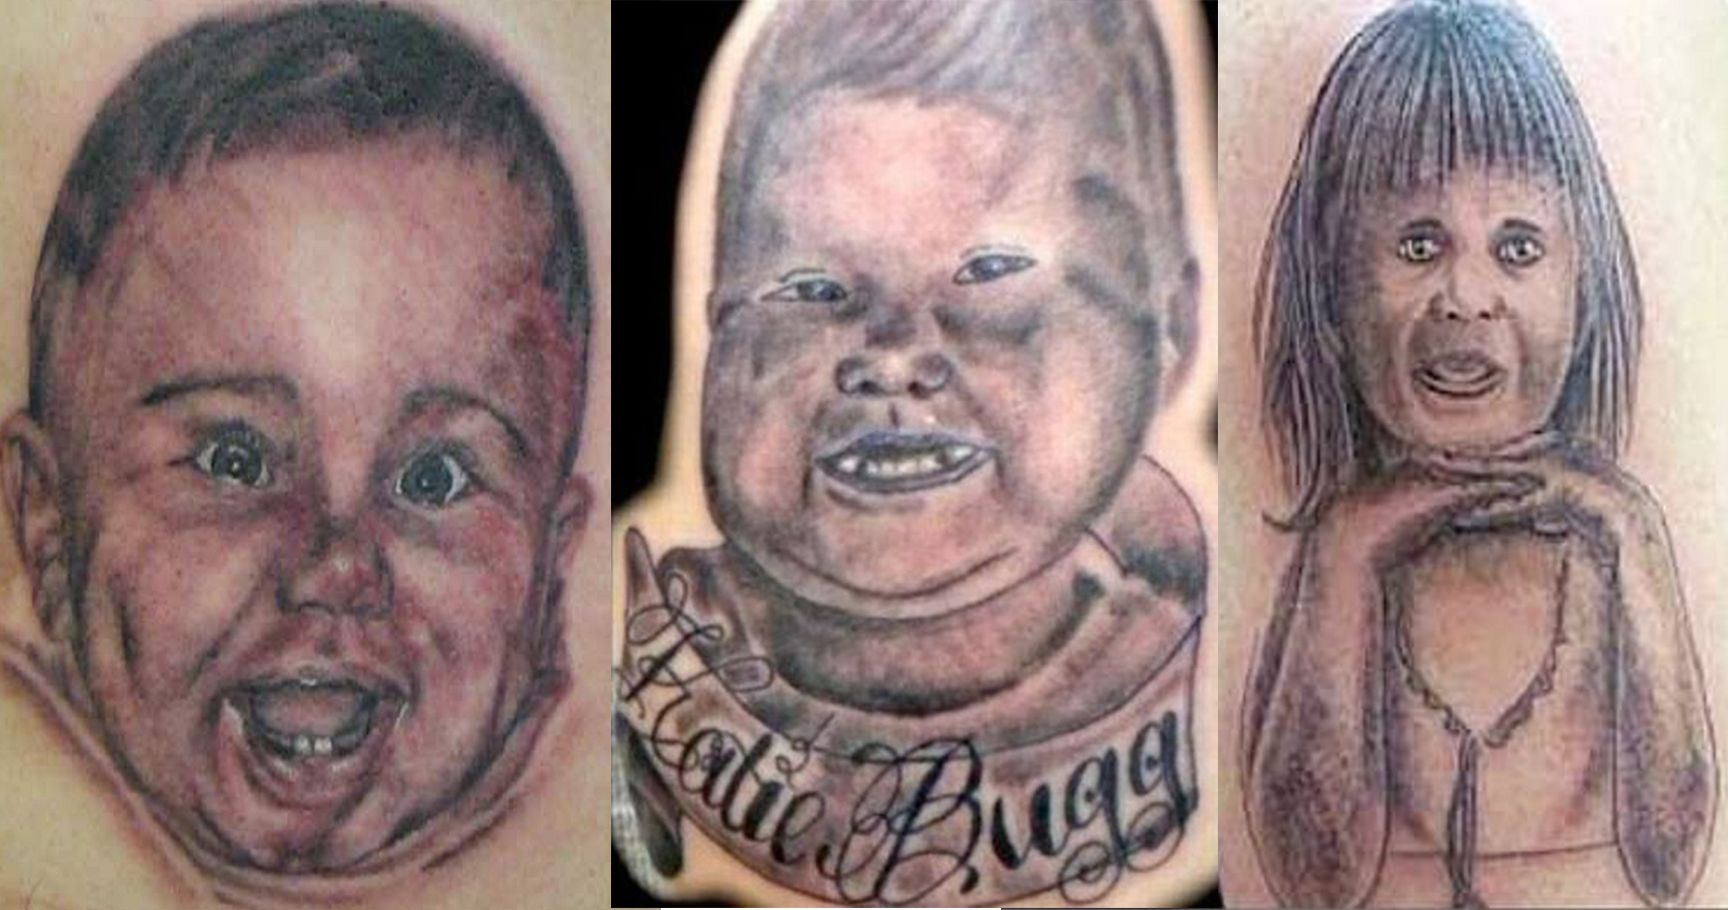 15 Of The Worst Parent Tattoos The Internet Has Ever Seen